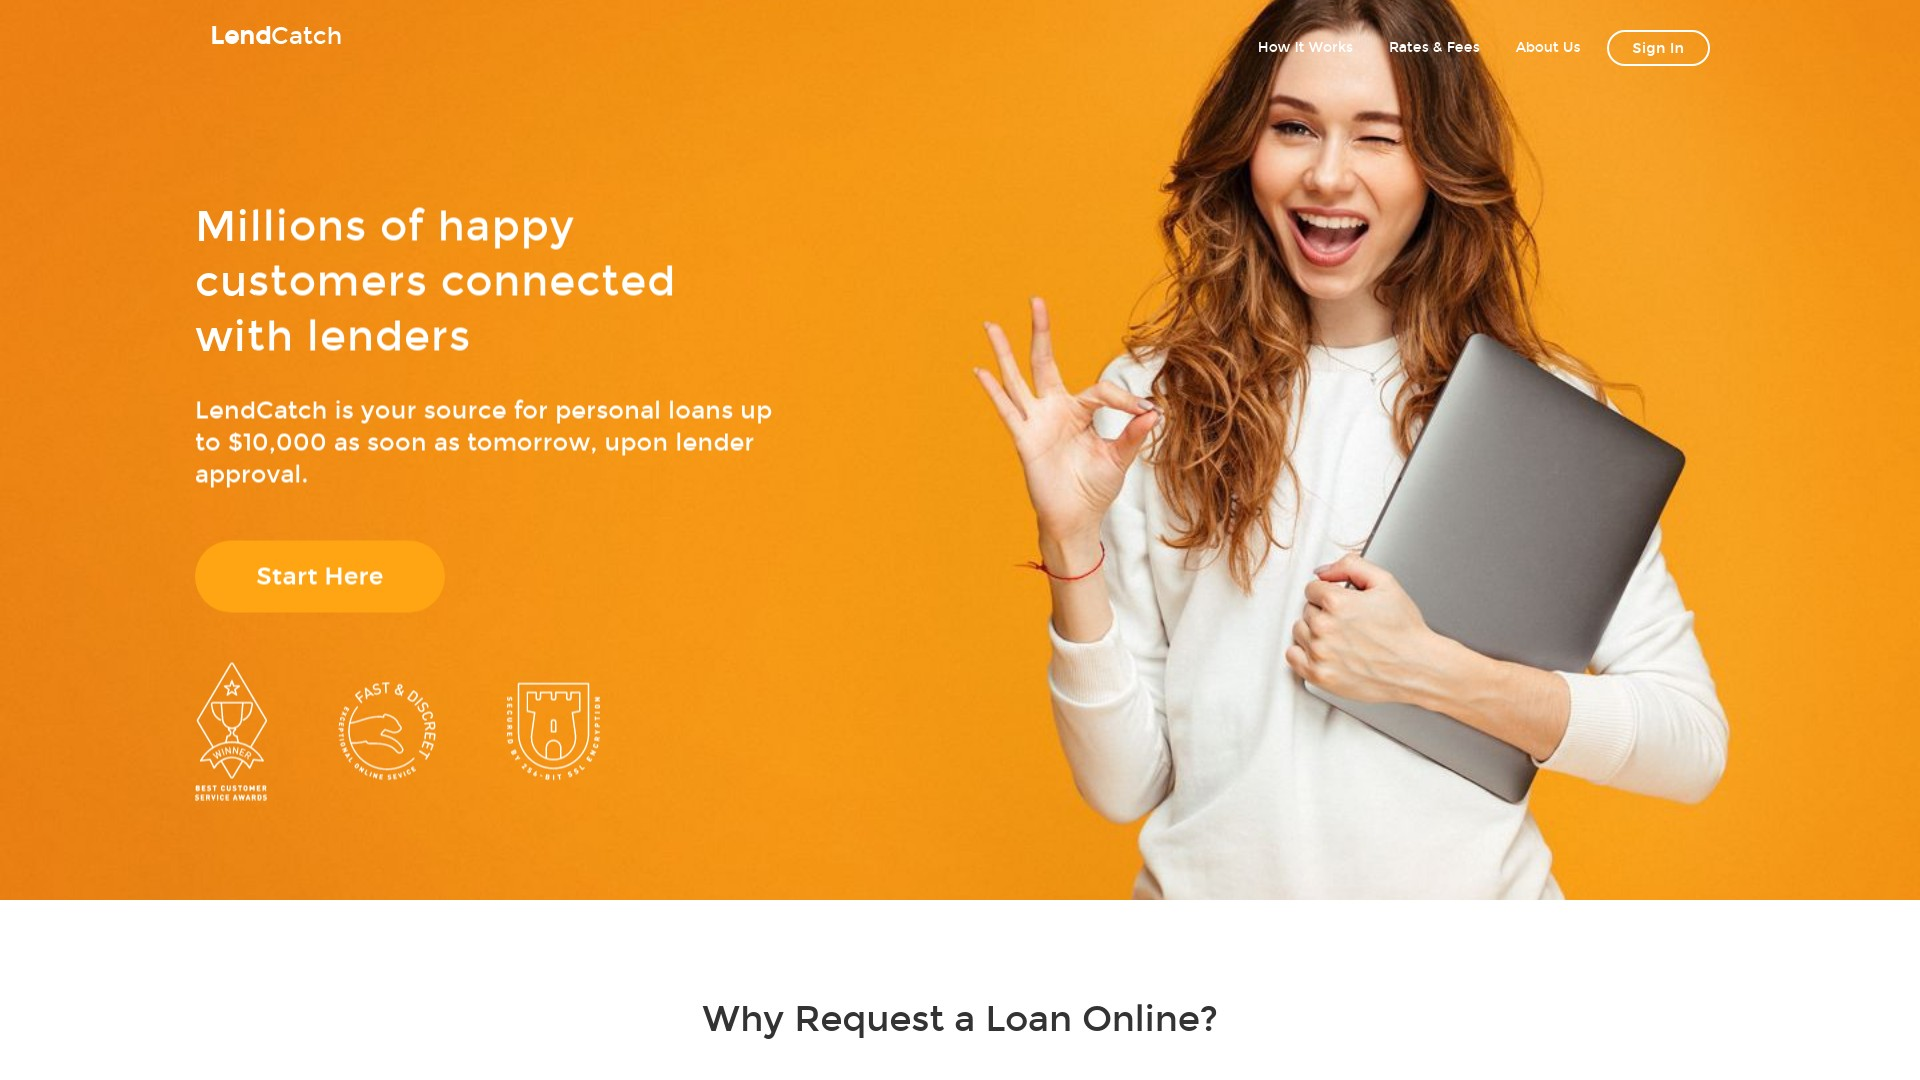 Is Lendcatch a Scam? The Personal Loan Website